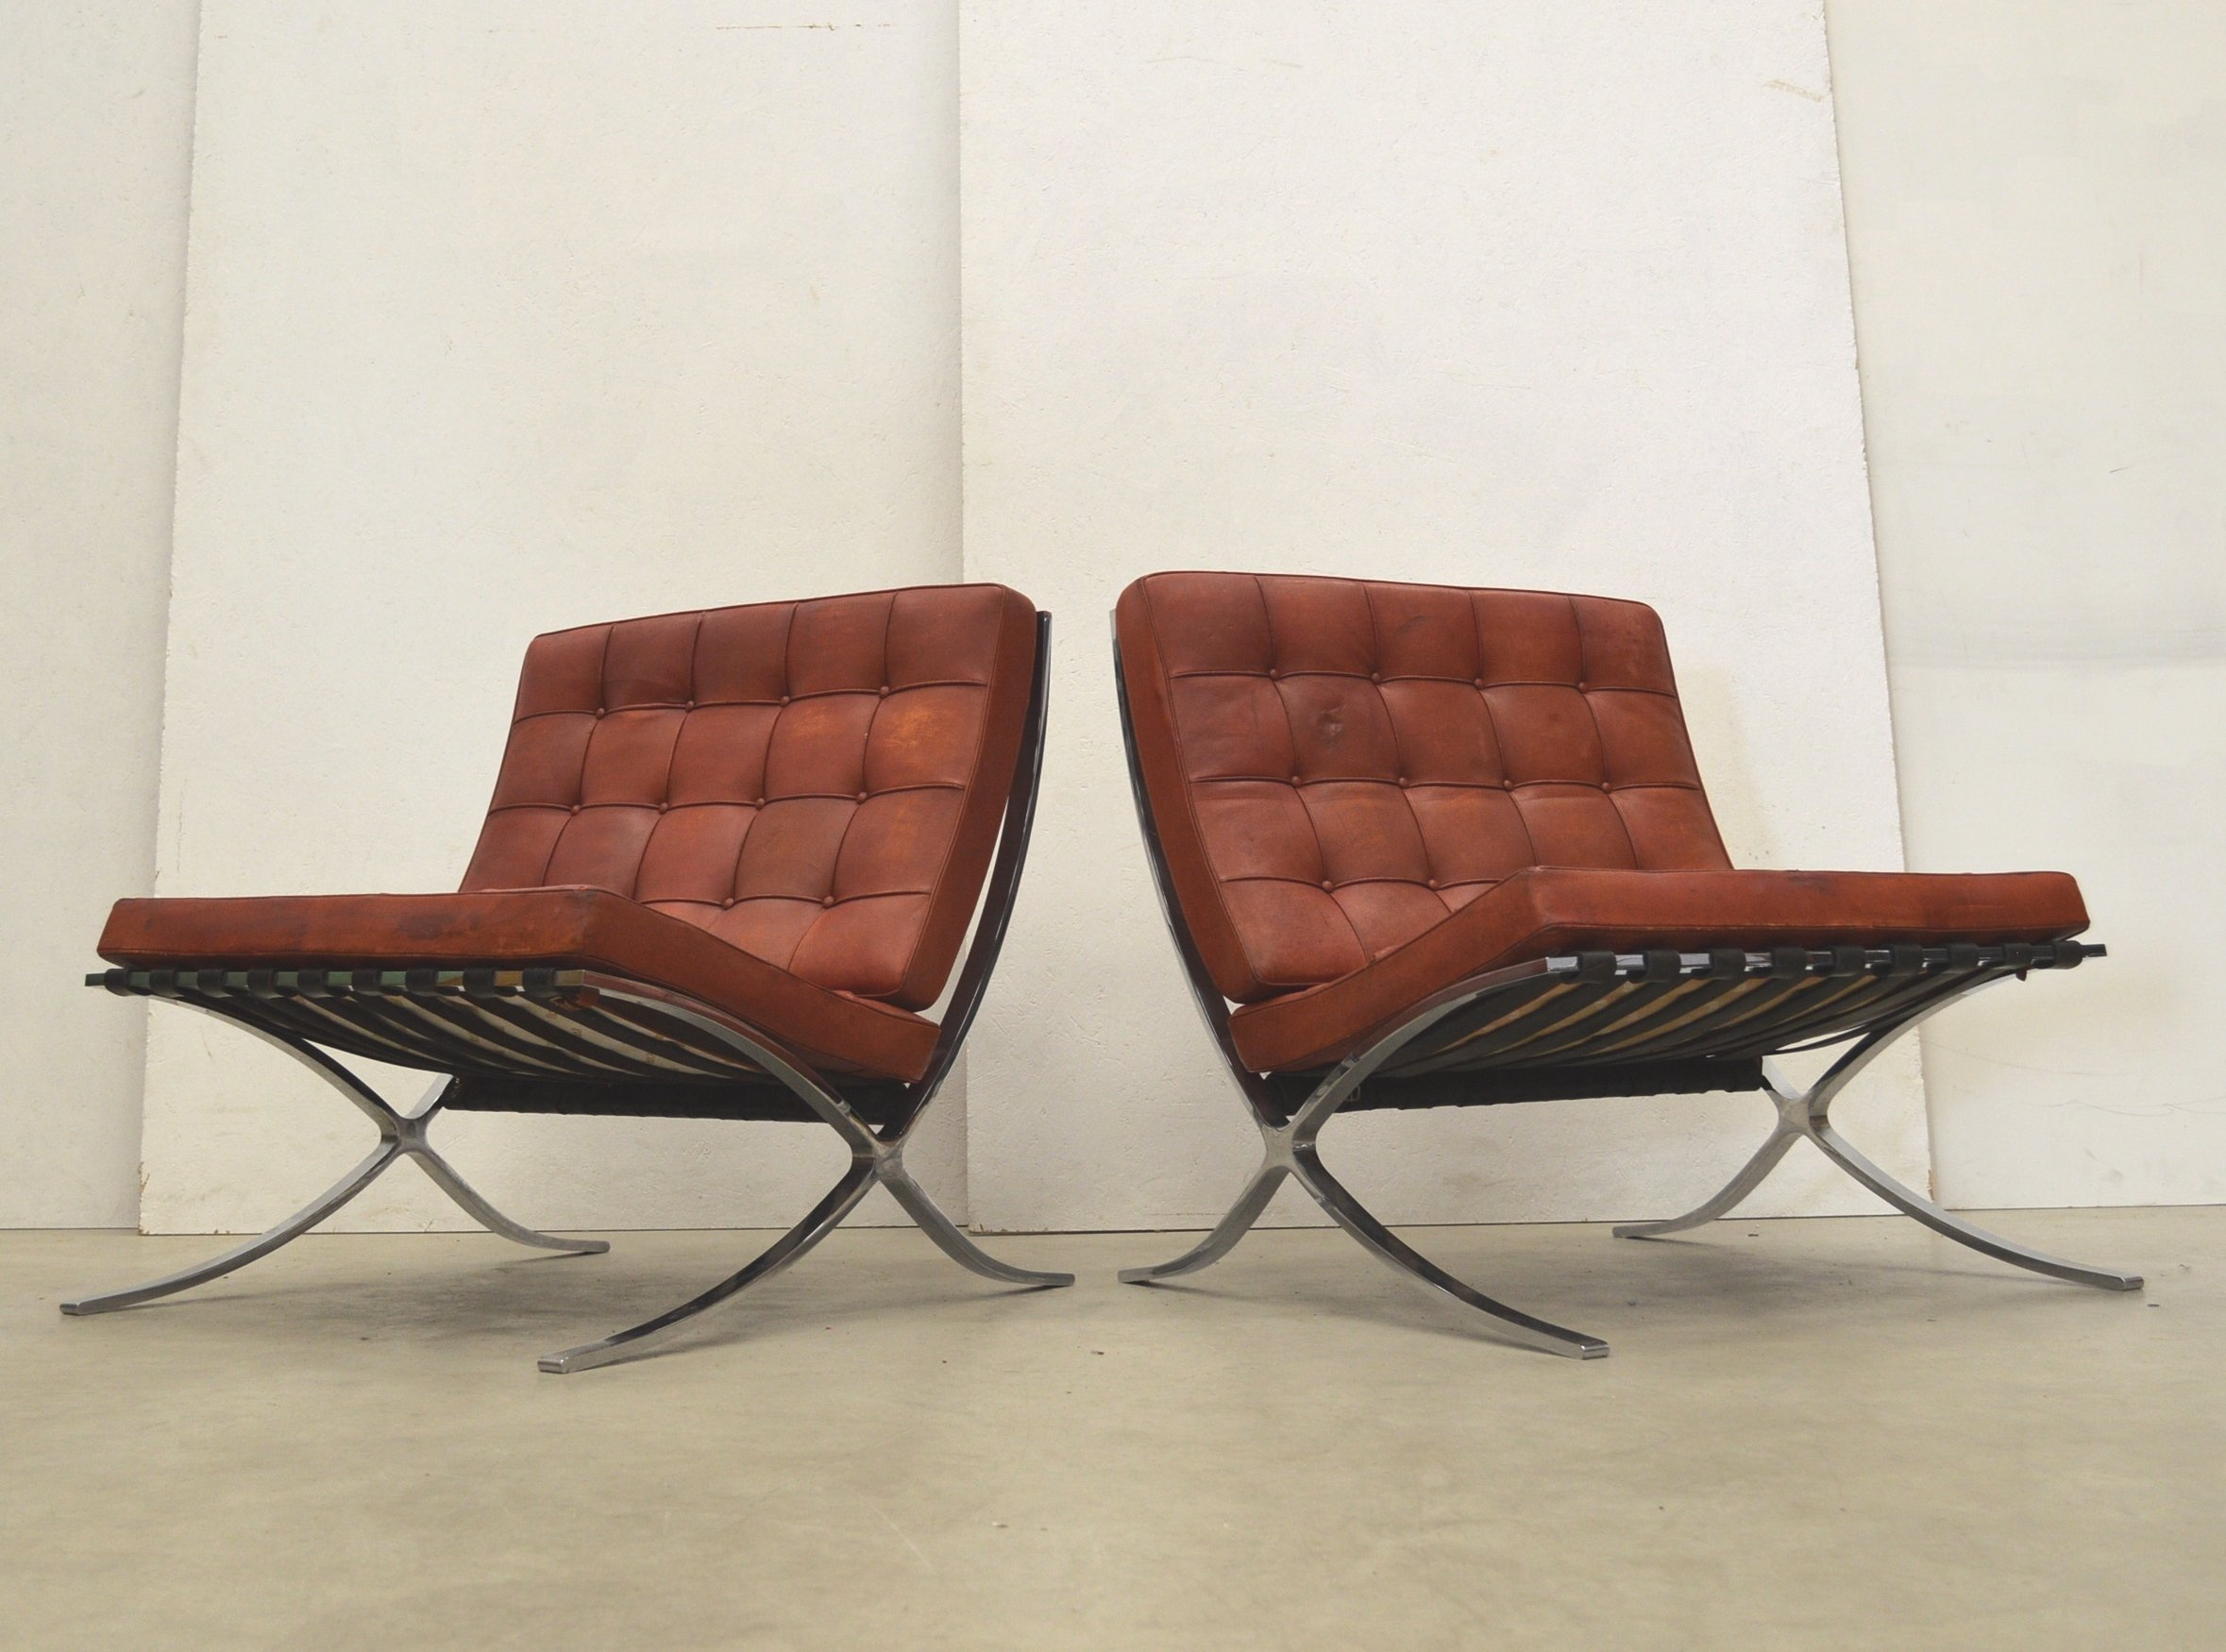 early vintage barcelona chairs by mies van der rohe for knoll 1950s 129296 early vintage barcelona chairs by mies van der rohe for knoll 1950s